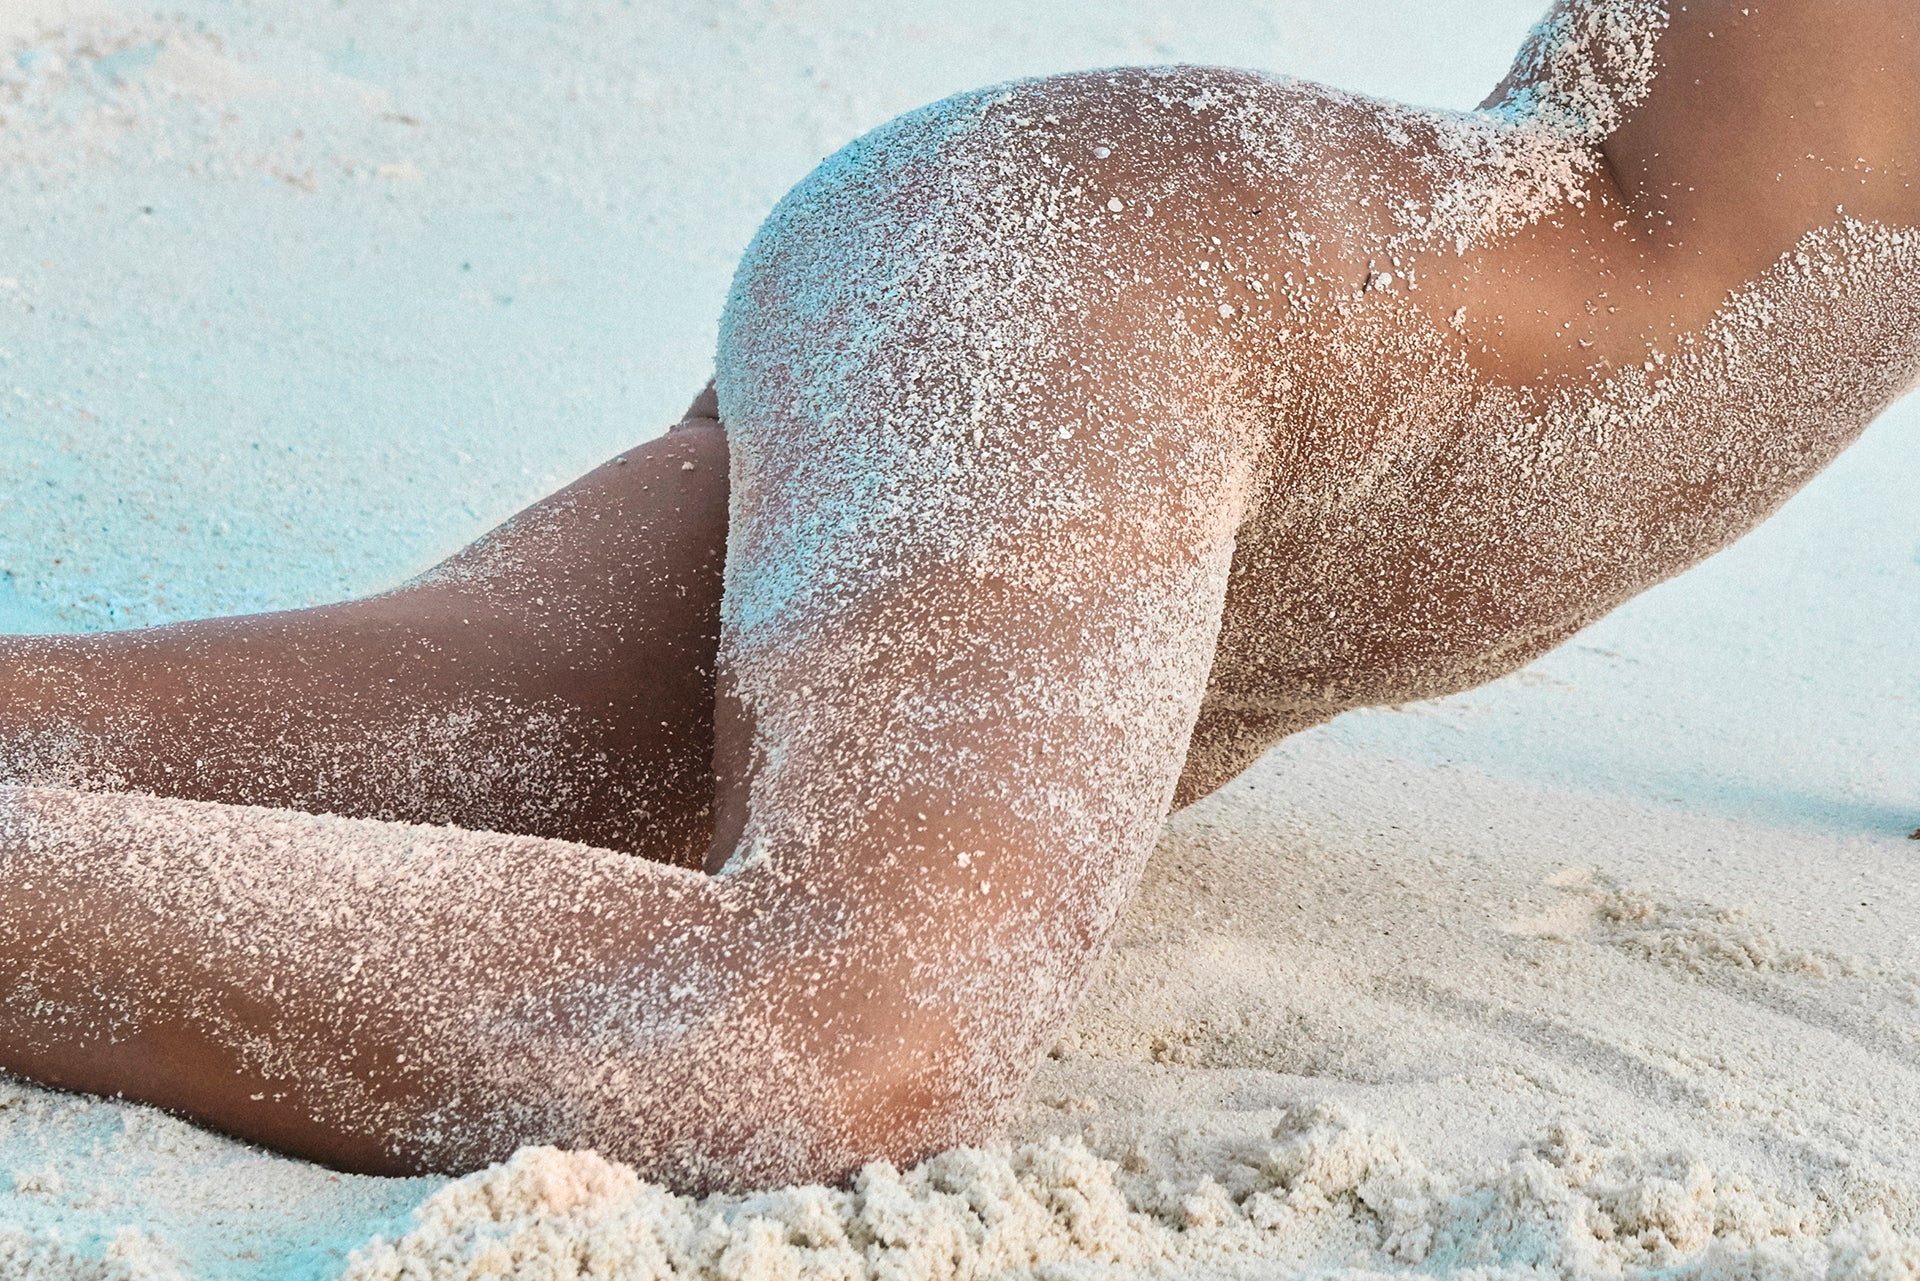 Jacques Weyers - Sand & Skin 08